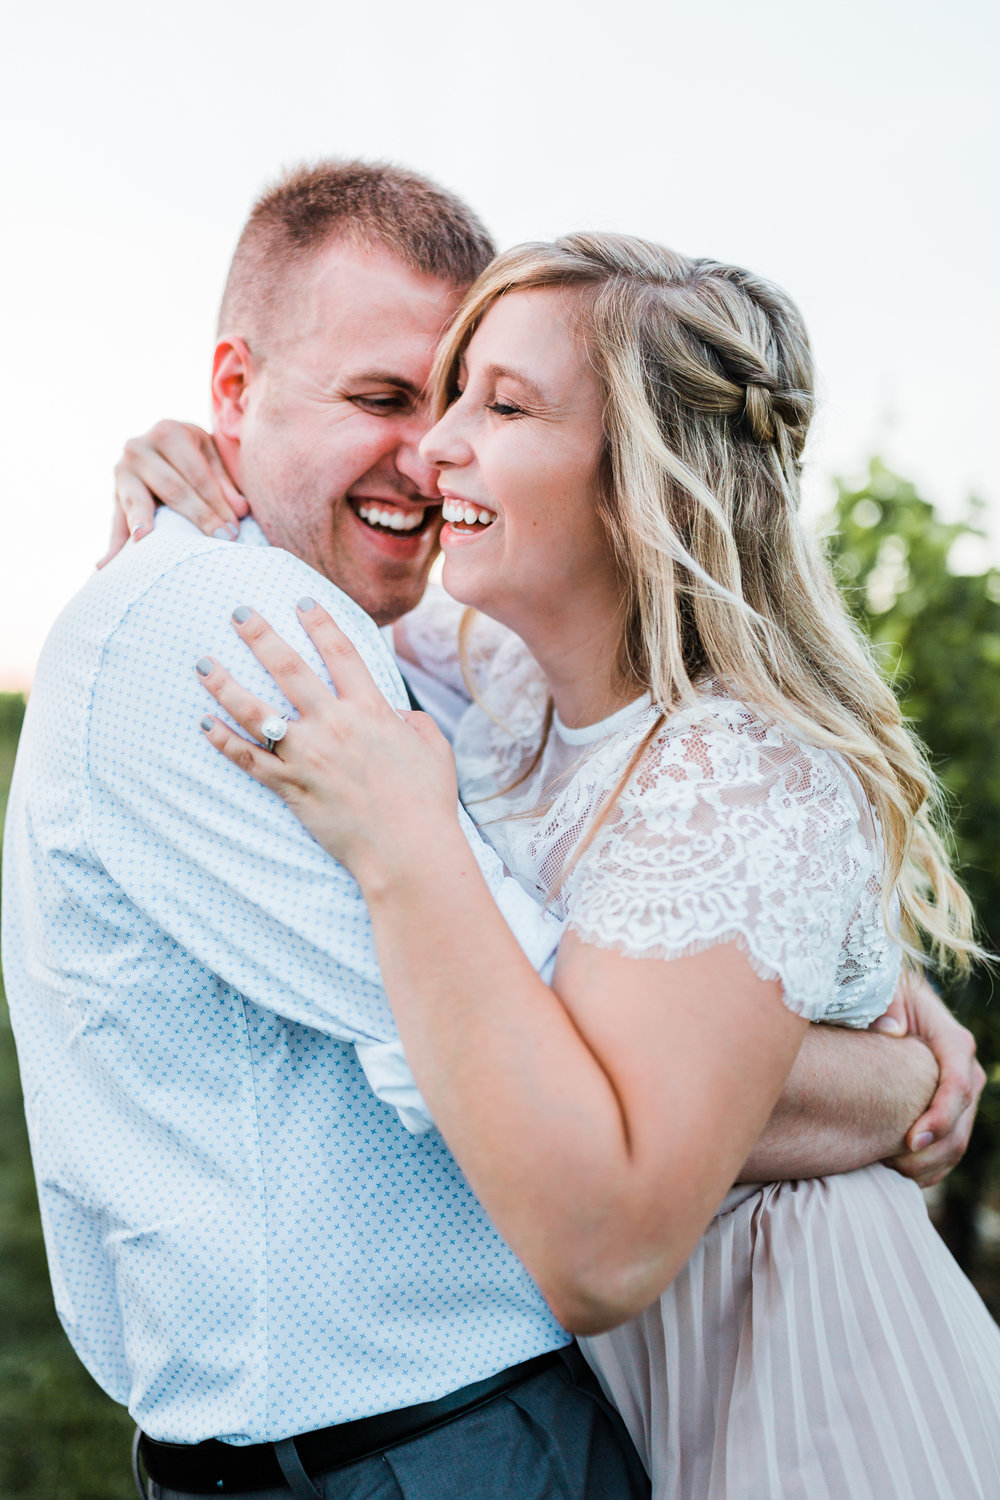 couple laughing together while hugging - maryland engagement photographer